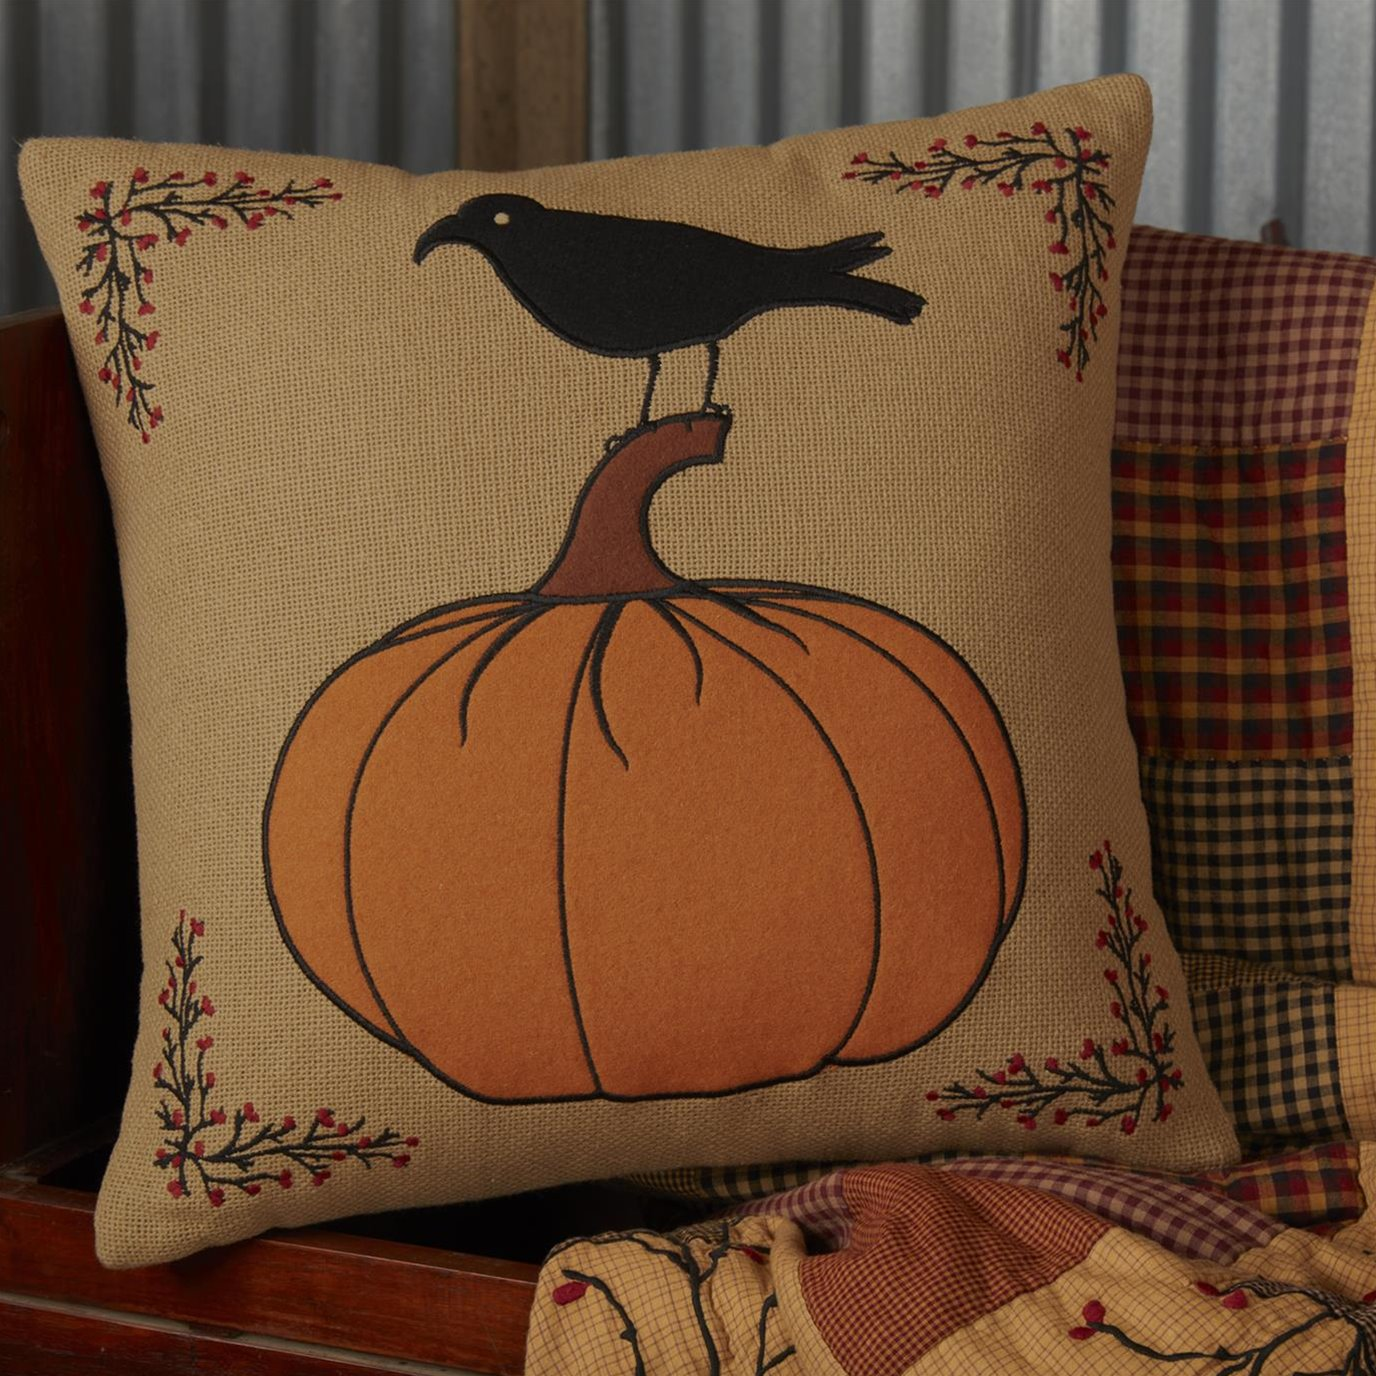 Heritage Farms Pumpkin and Crow Pillow 18x18